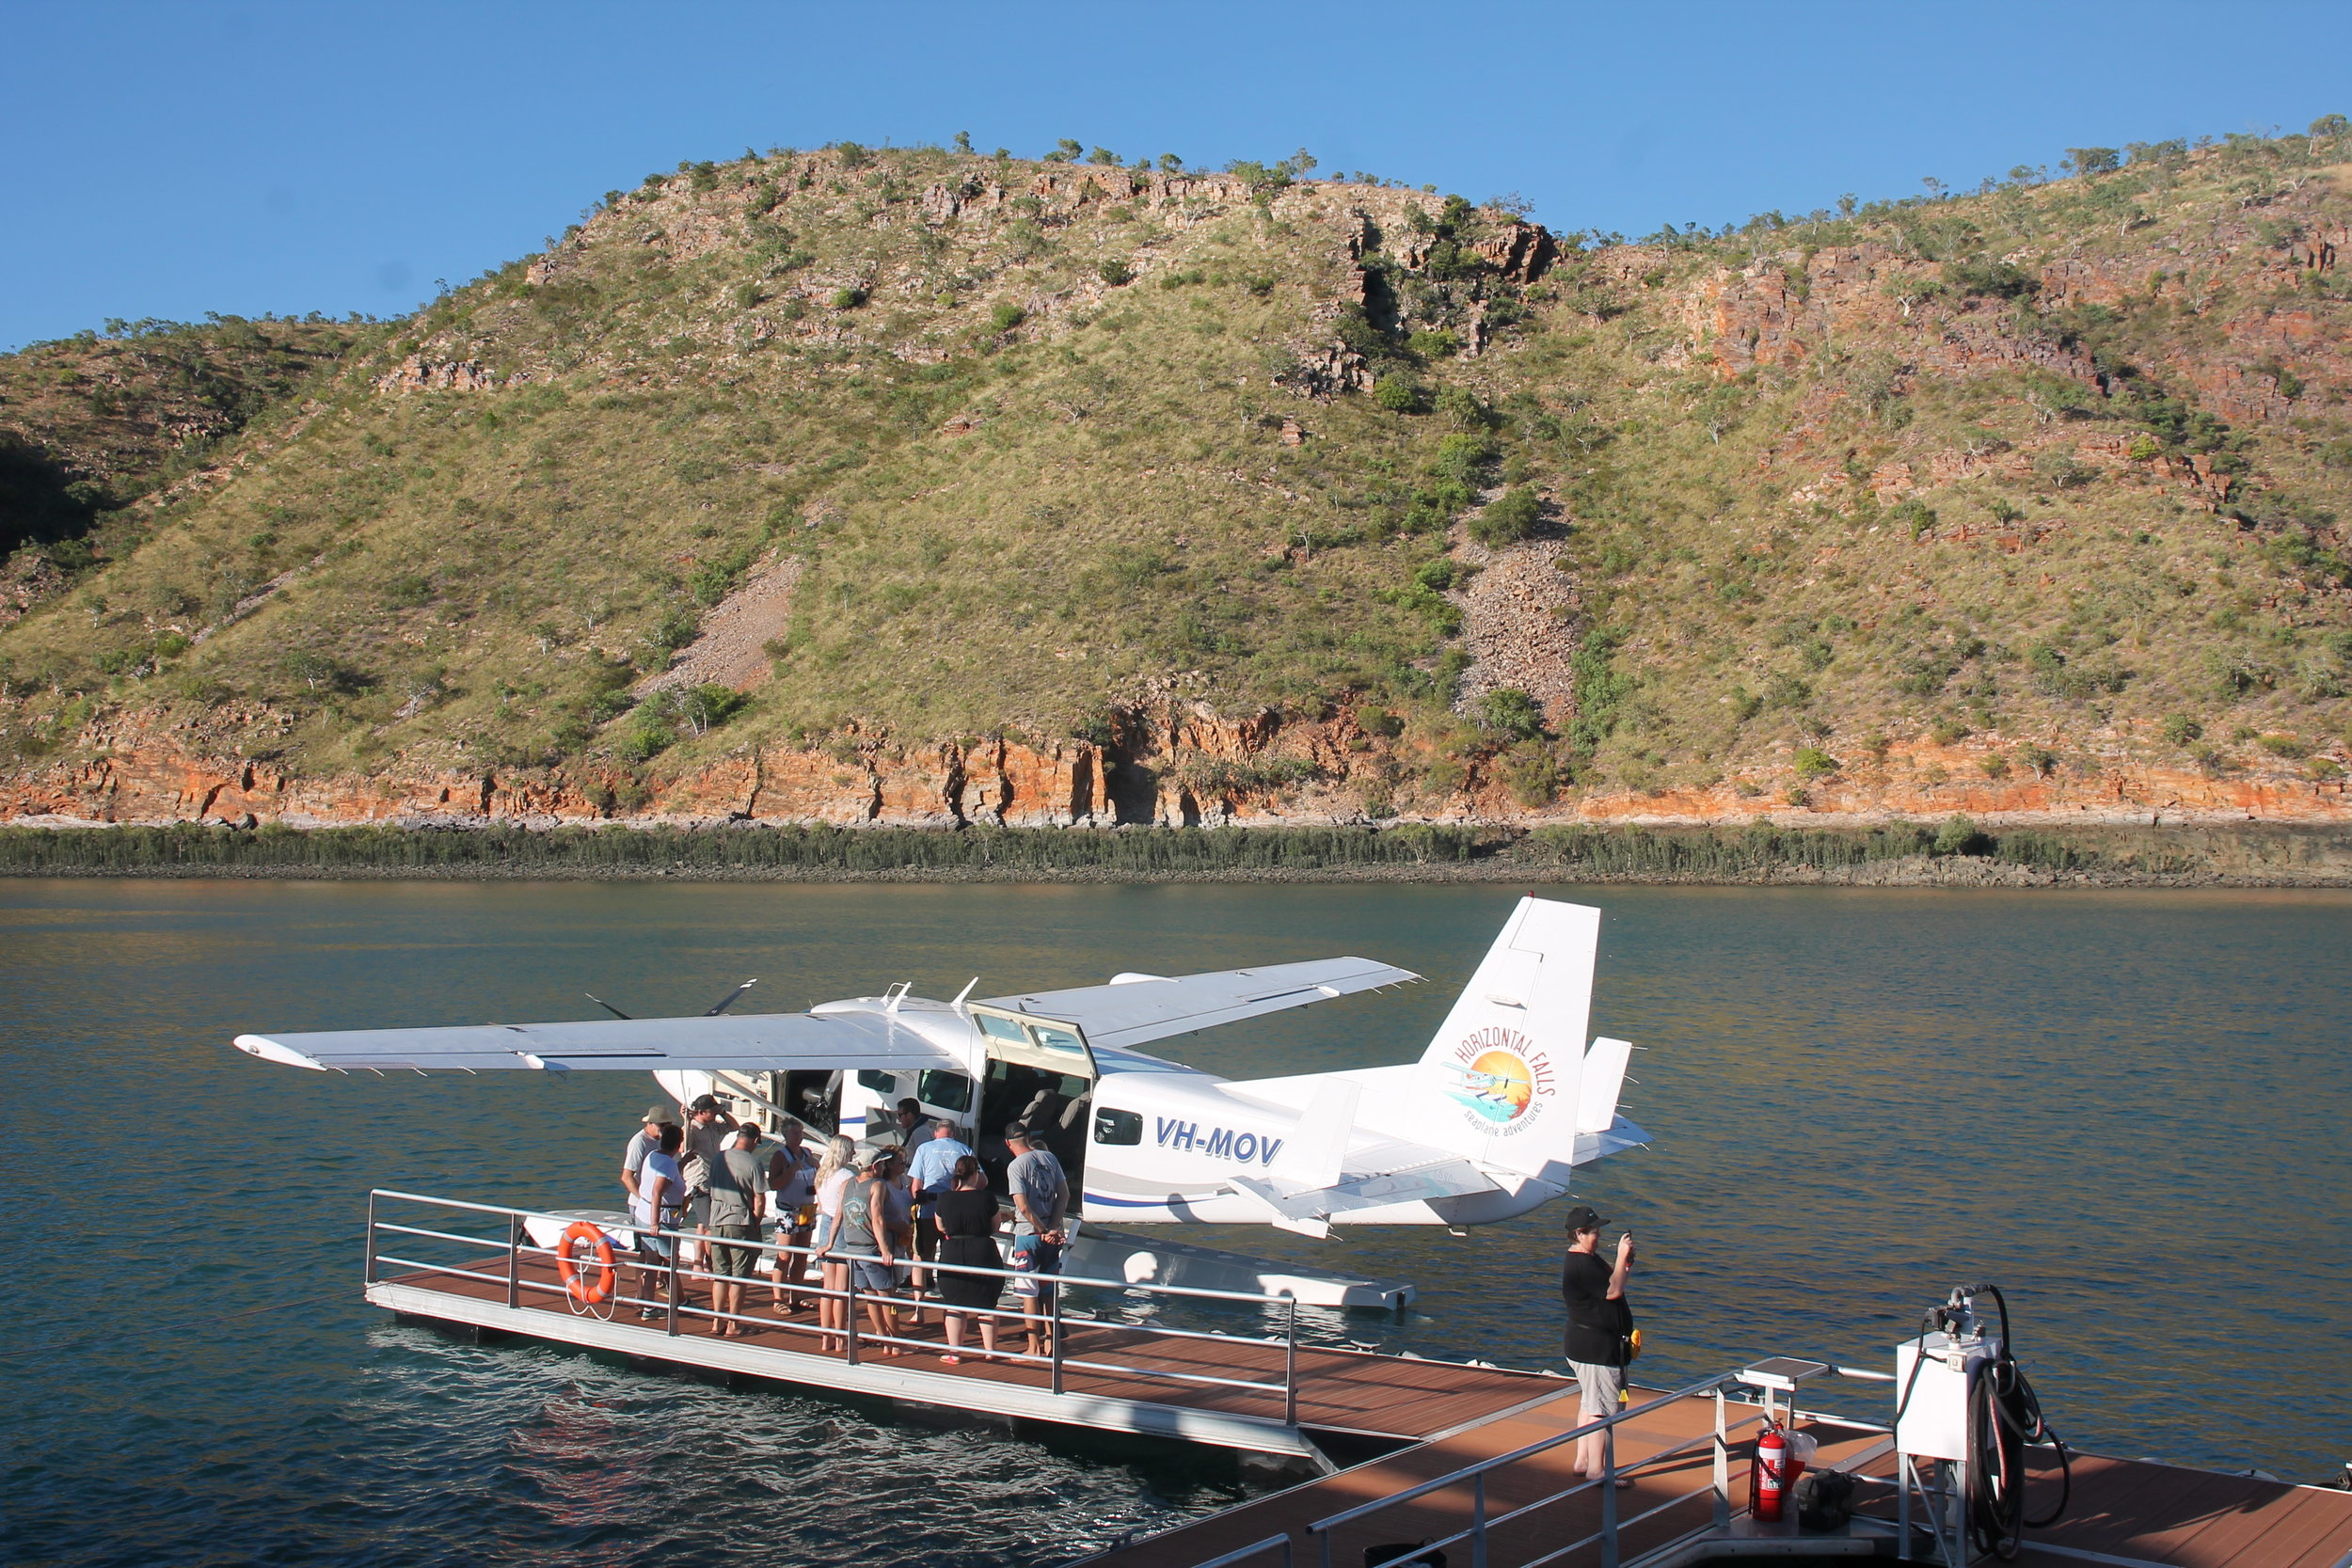 The Seaplane docked at the Horizontal Falls Base.